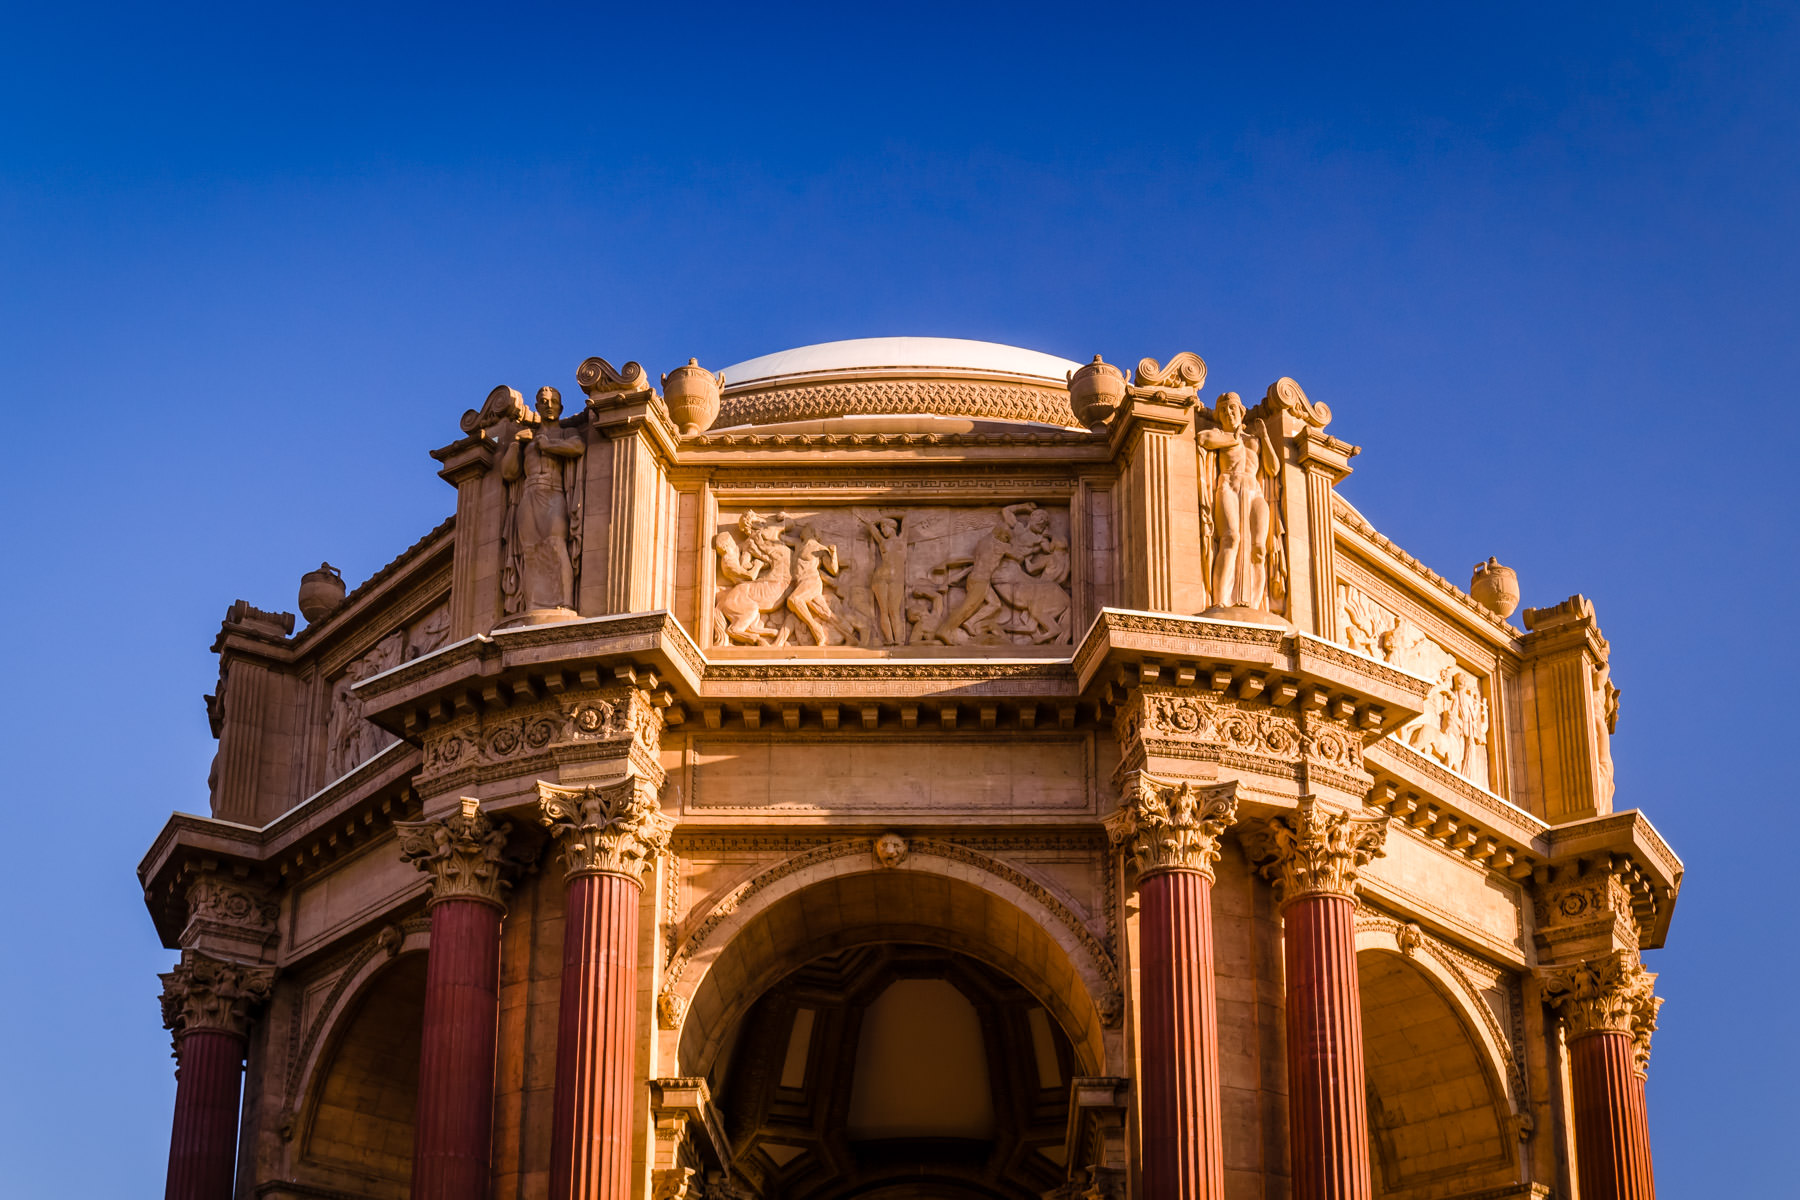 The rotunda of San Francisco's Palace of Fine Arts rises into the early-morning sky.